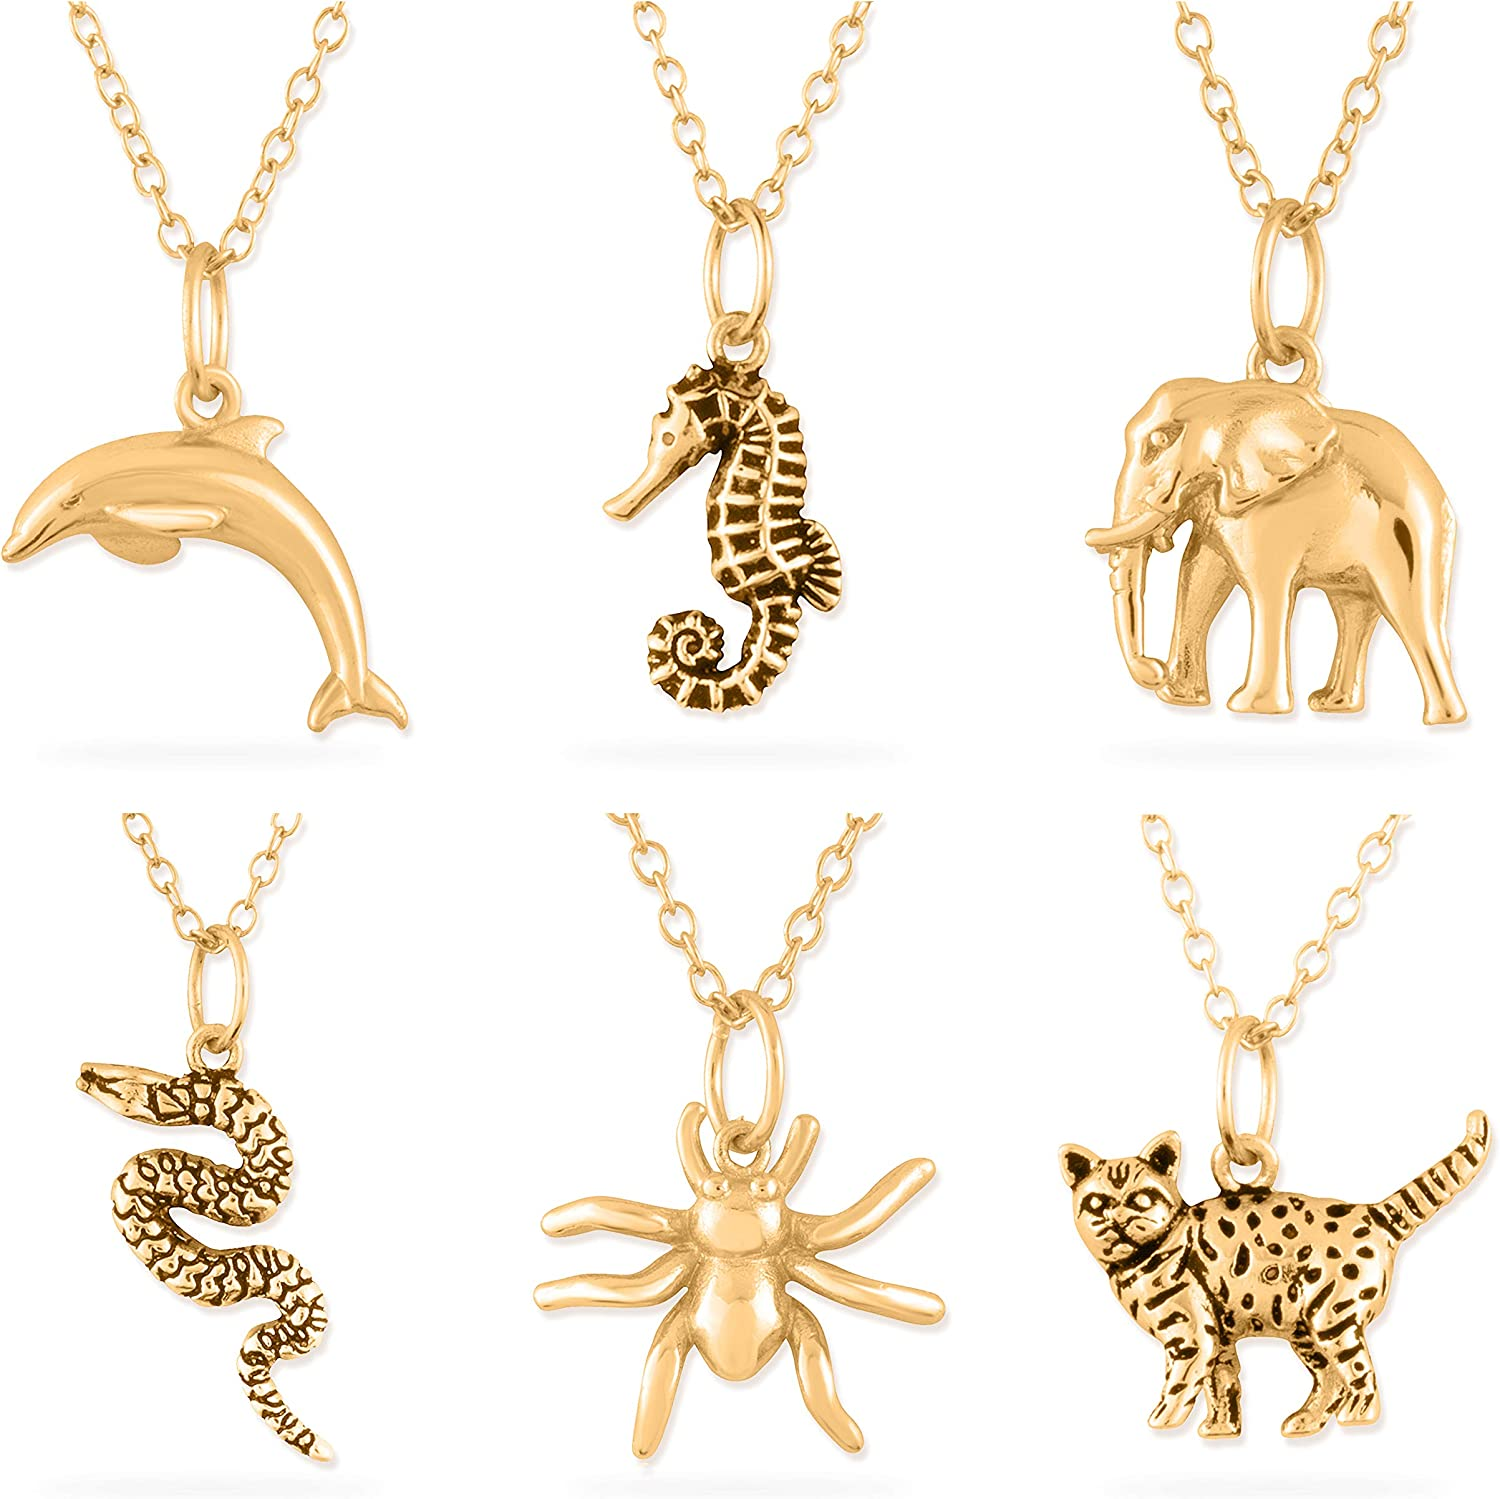 Azaggi Gold Plated Silver Necklace Panther Wild Cat Cub Animal Charm Pendant Necklace Lobster Claw.This Unisex Gold Plated Necklace is the Perfect Holiday Gift Jewelry Gift For Her For Him